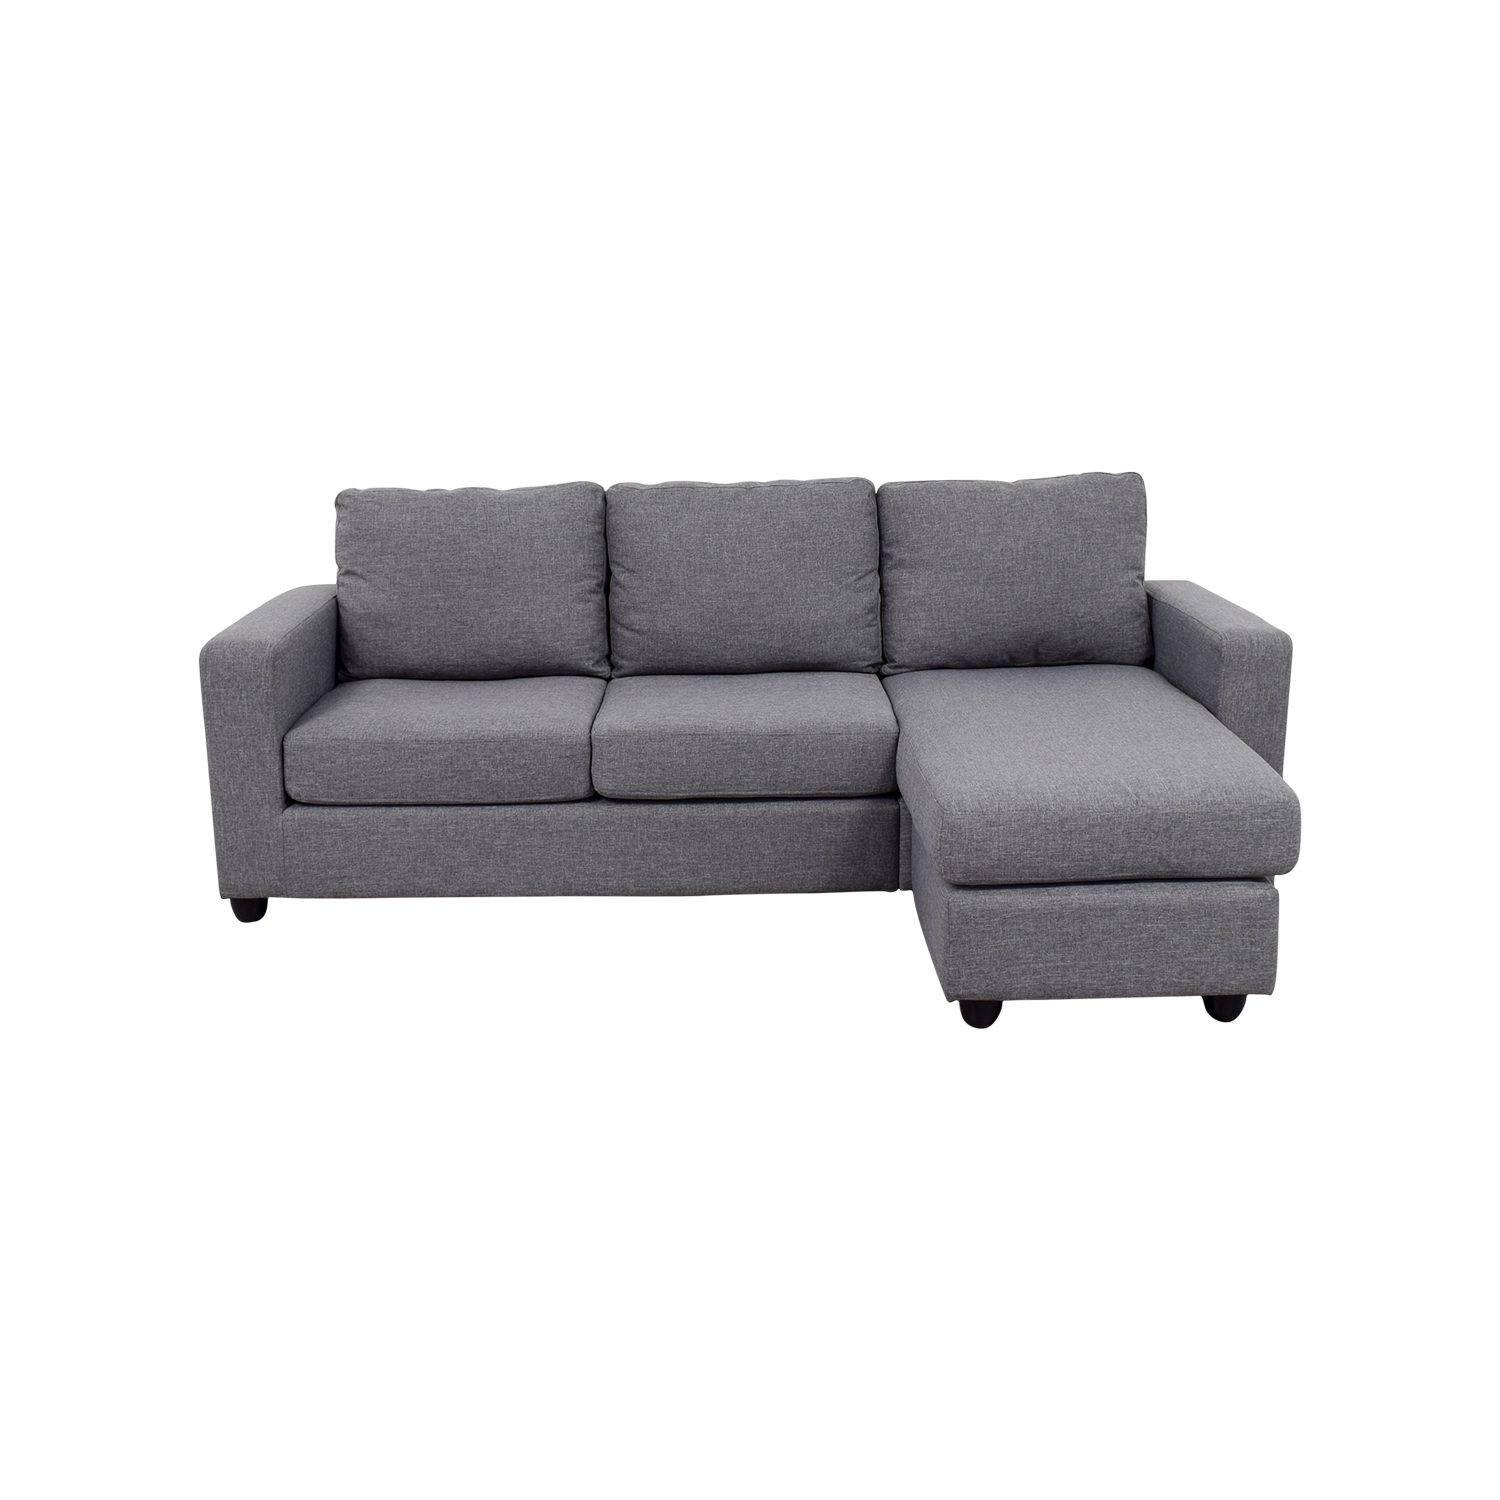 35 off grey l shaped chaise couch sofas